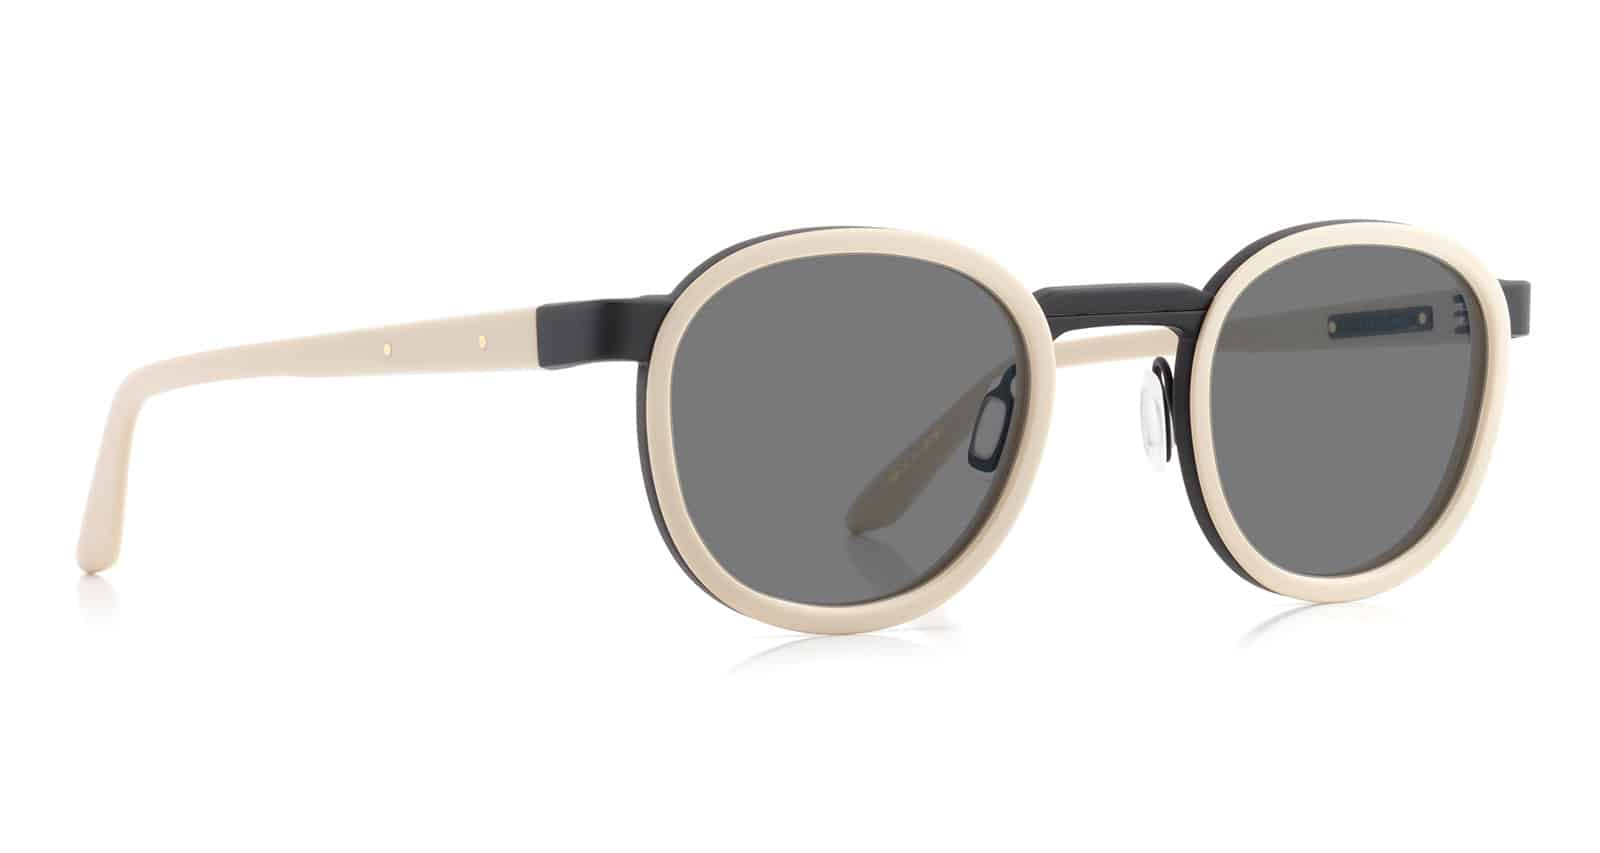 87c734782f ... eyewear manufacturers in Italy and Japan. ✕